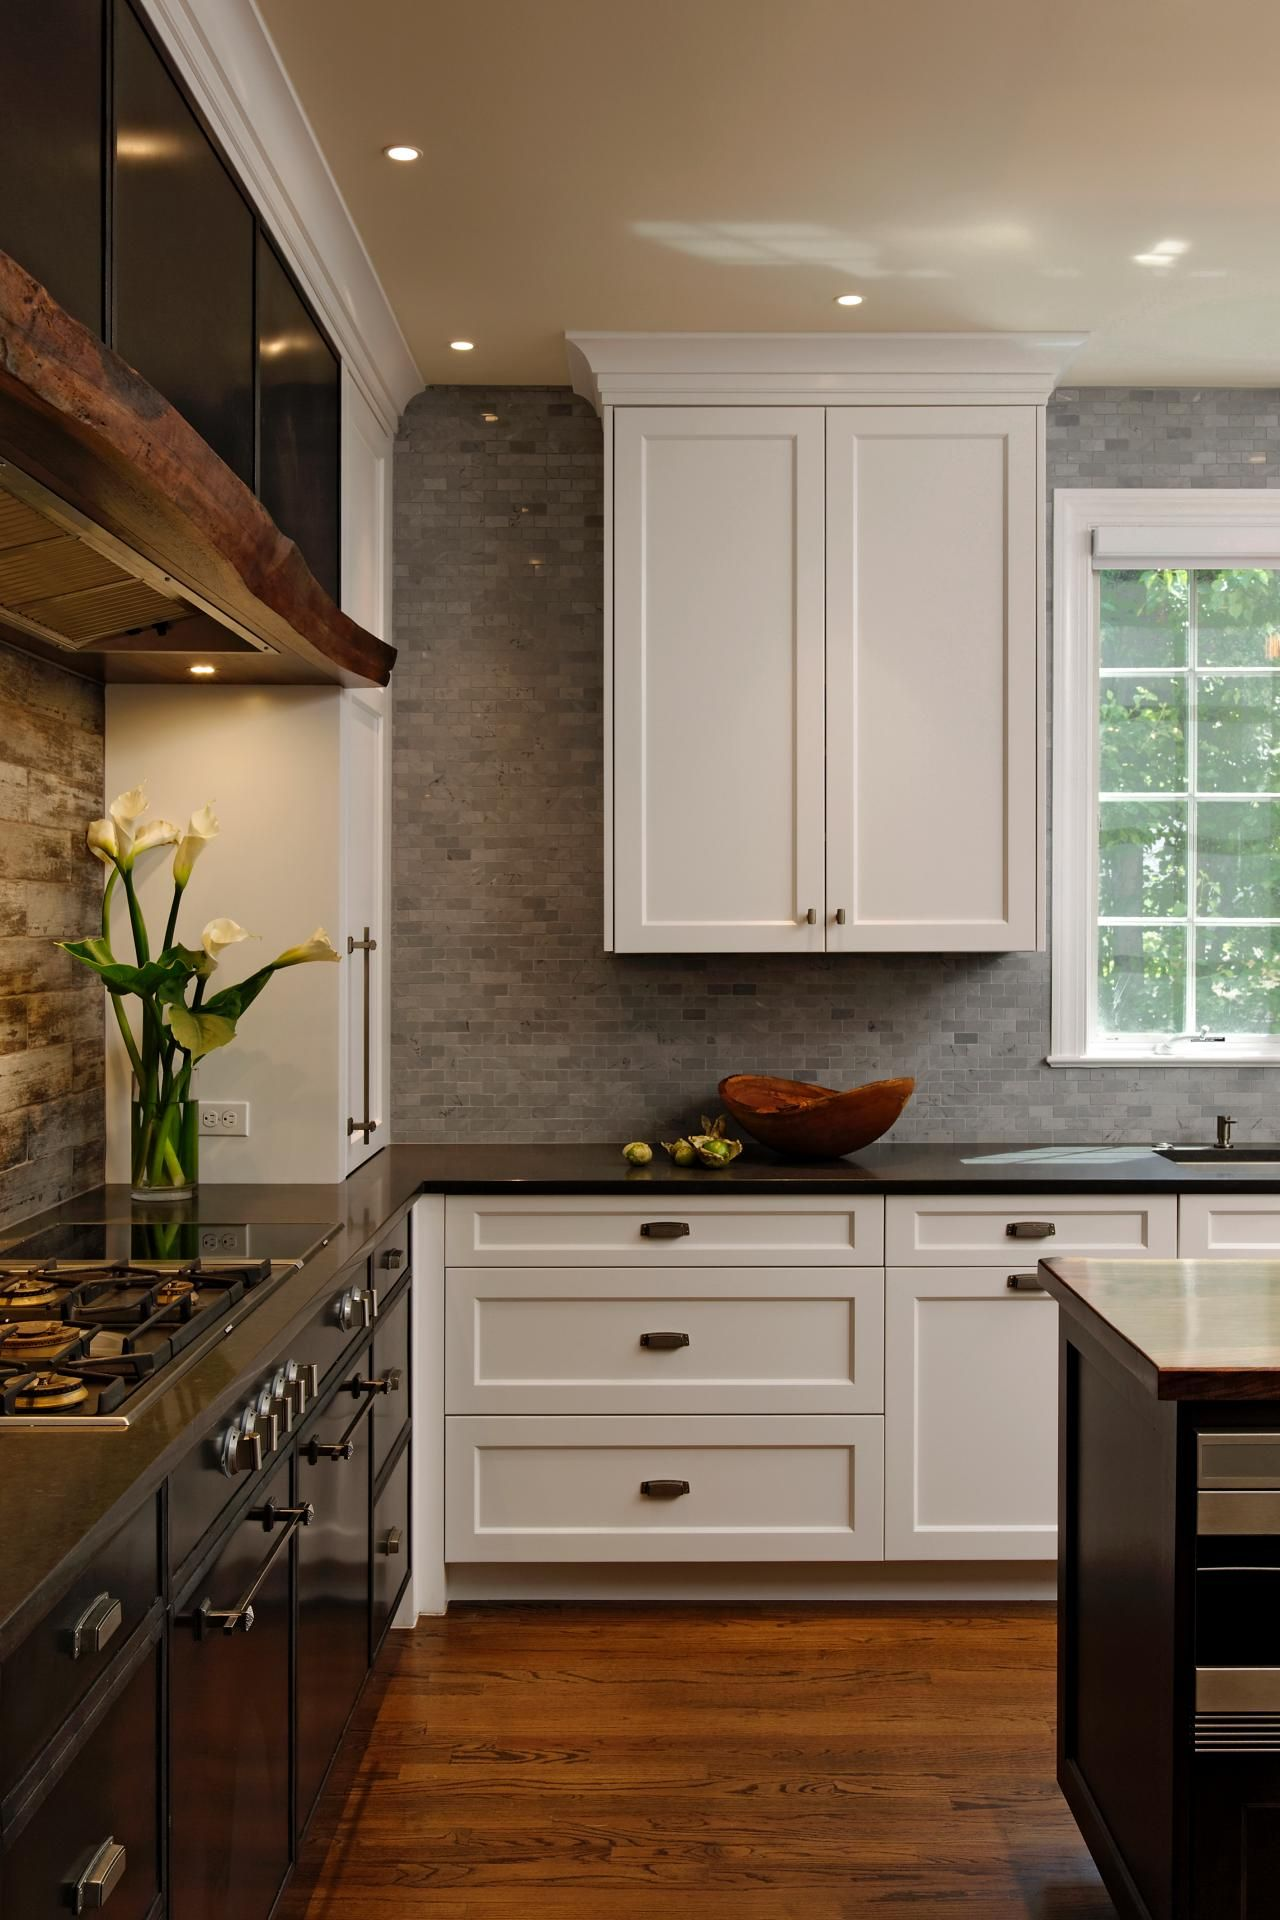 Cool And Contemporary With Rustic Accents This Gorgeous Kitchen Is Full Of Custom Farmhouse Style Kitchen Cabinets Contemporary Kitchen Kitchen Cabinet Styles